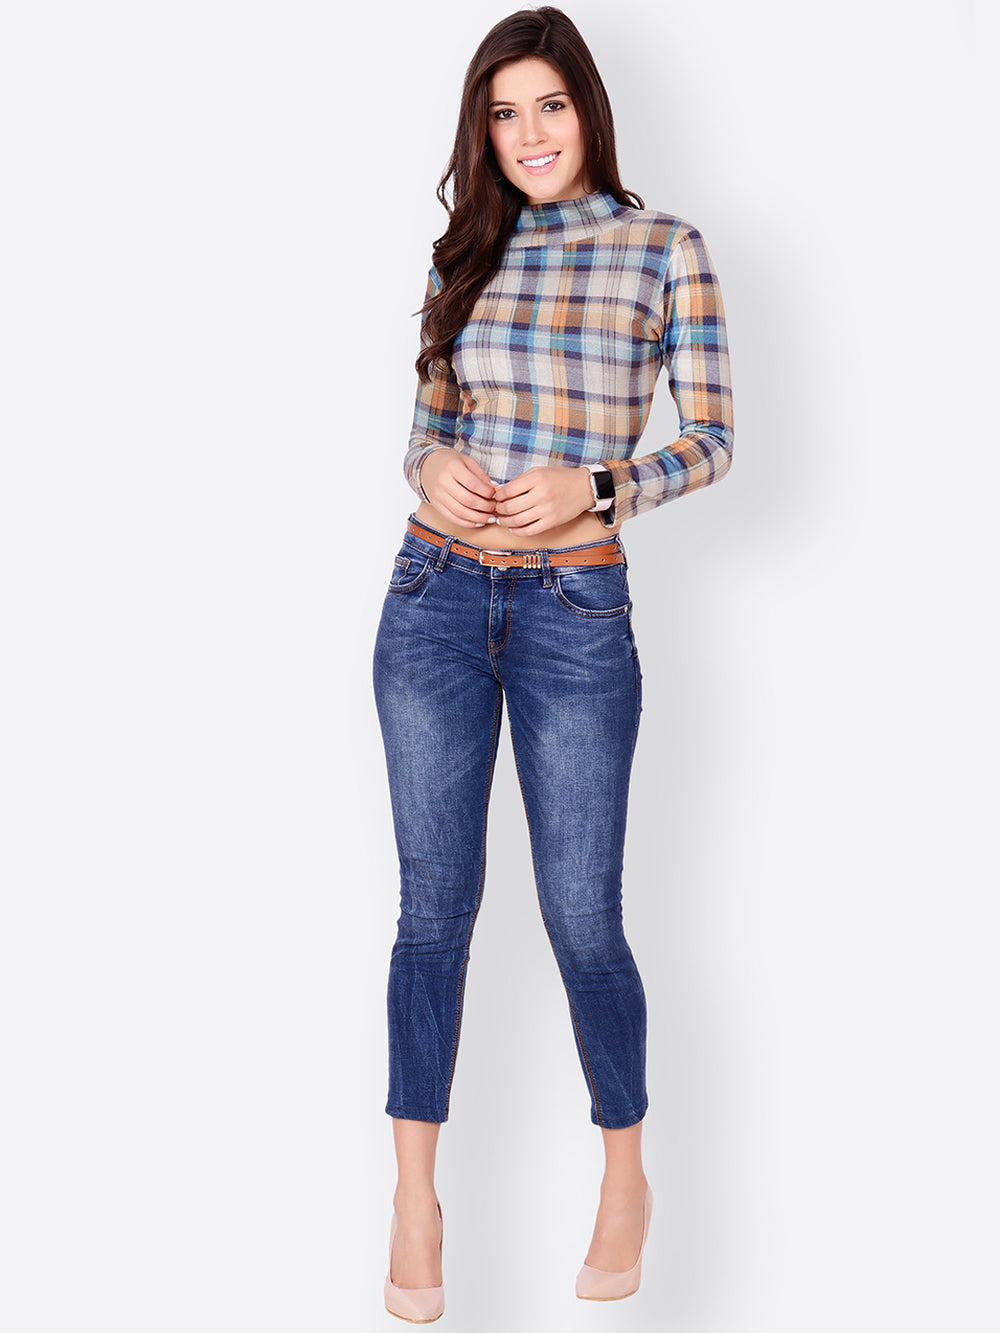 SCORPIUS Women Multicoloured Checked Fitted Crop Top